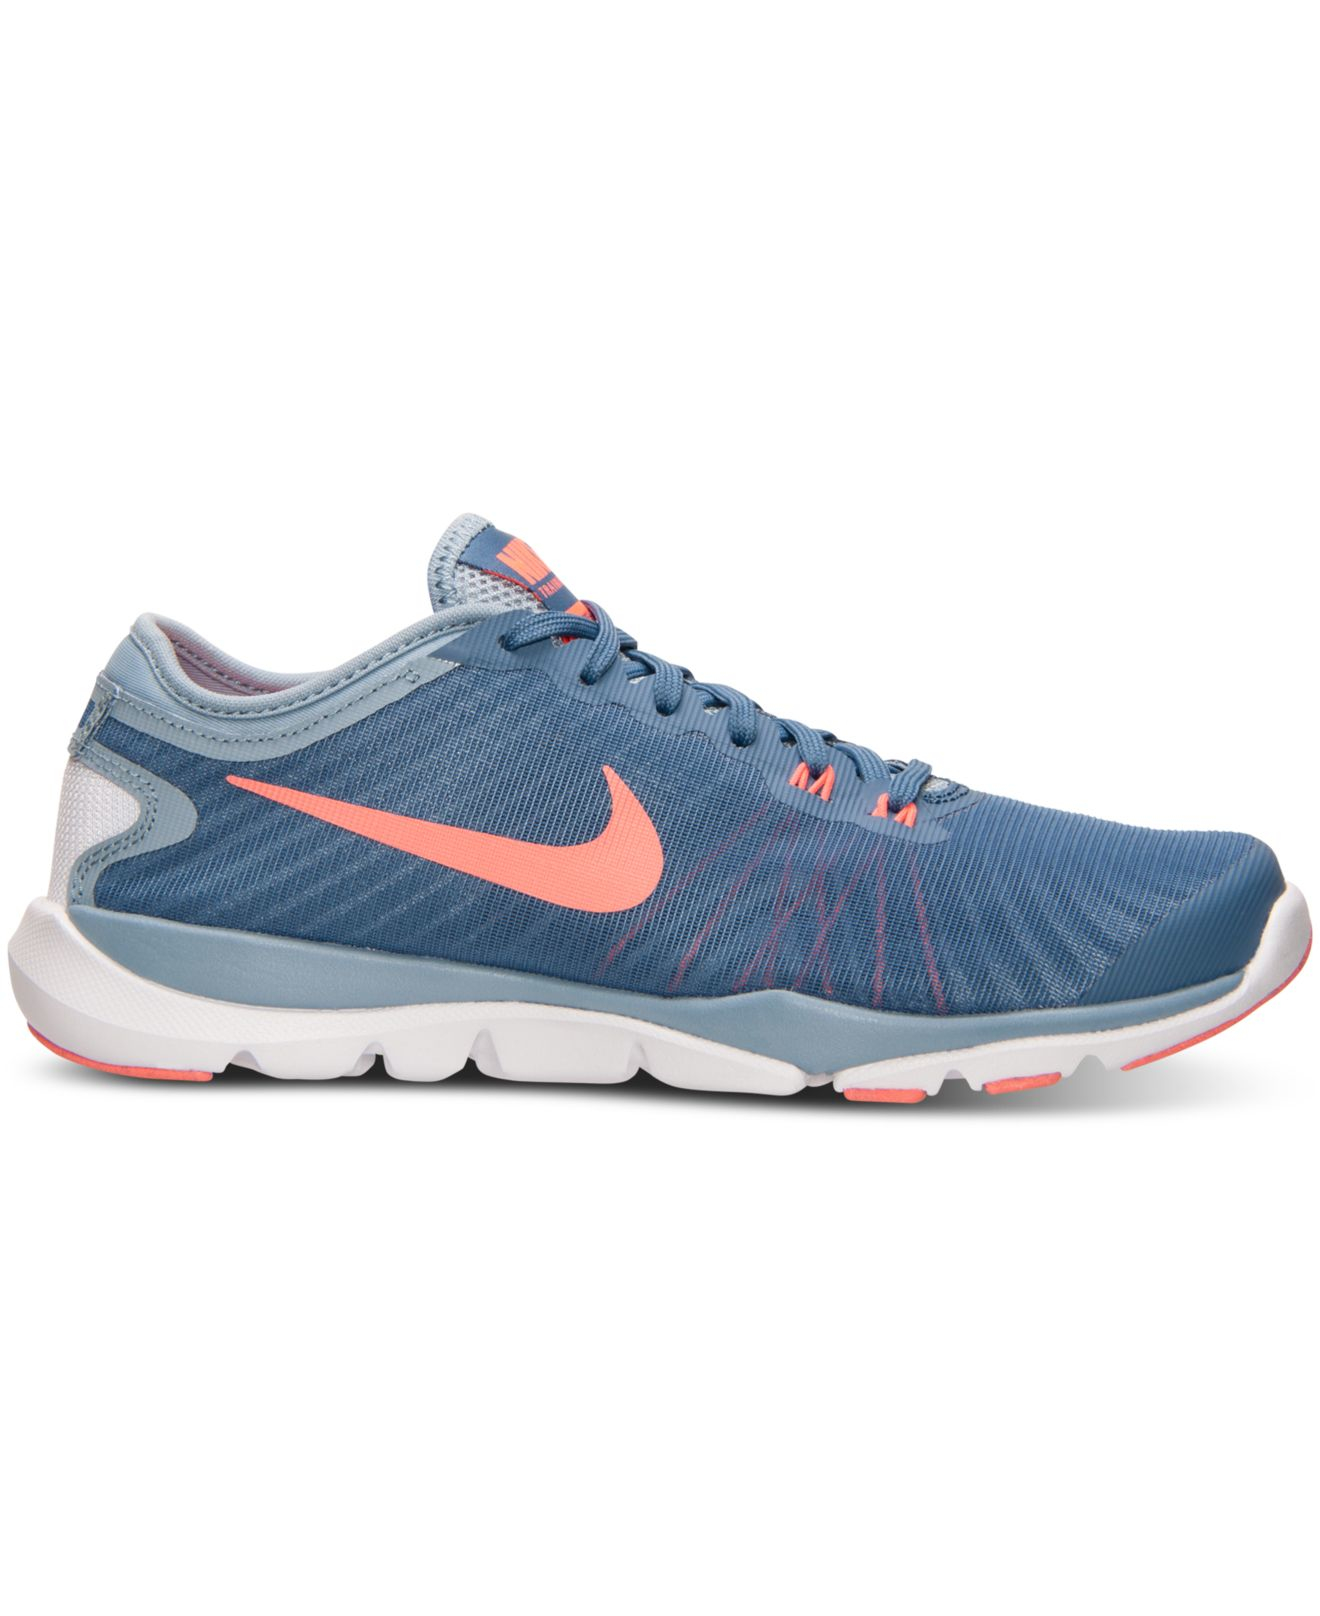 b6cace2a026 Lyst - Nike Women s Flex Supreme Tr 4 Training Sneakers From Finish ...